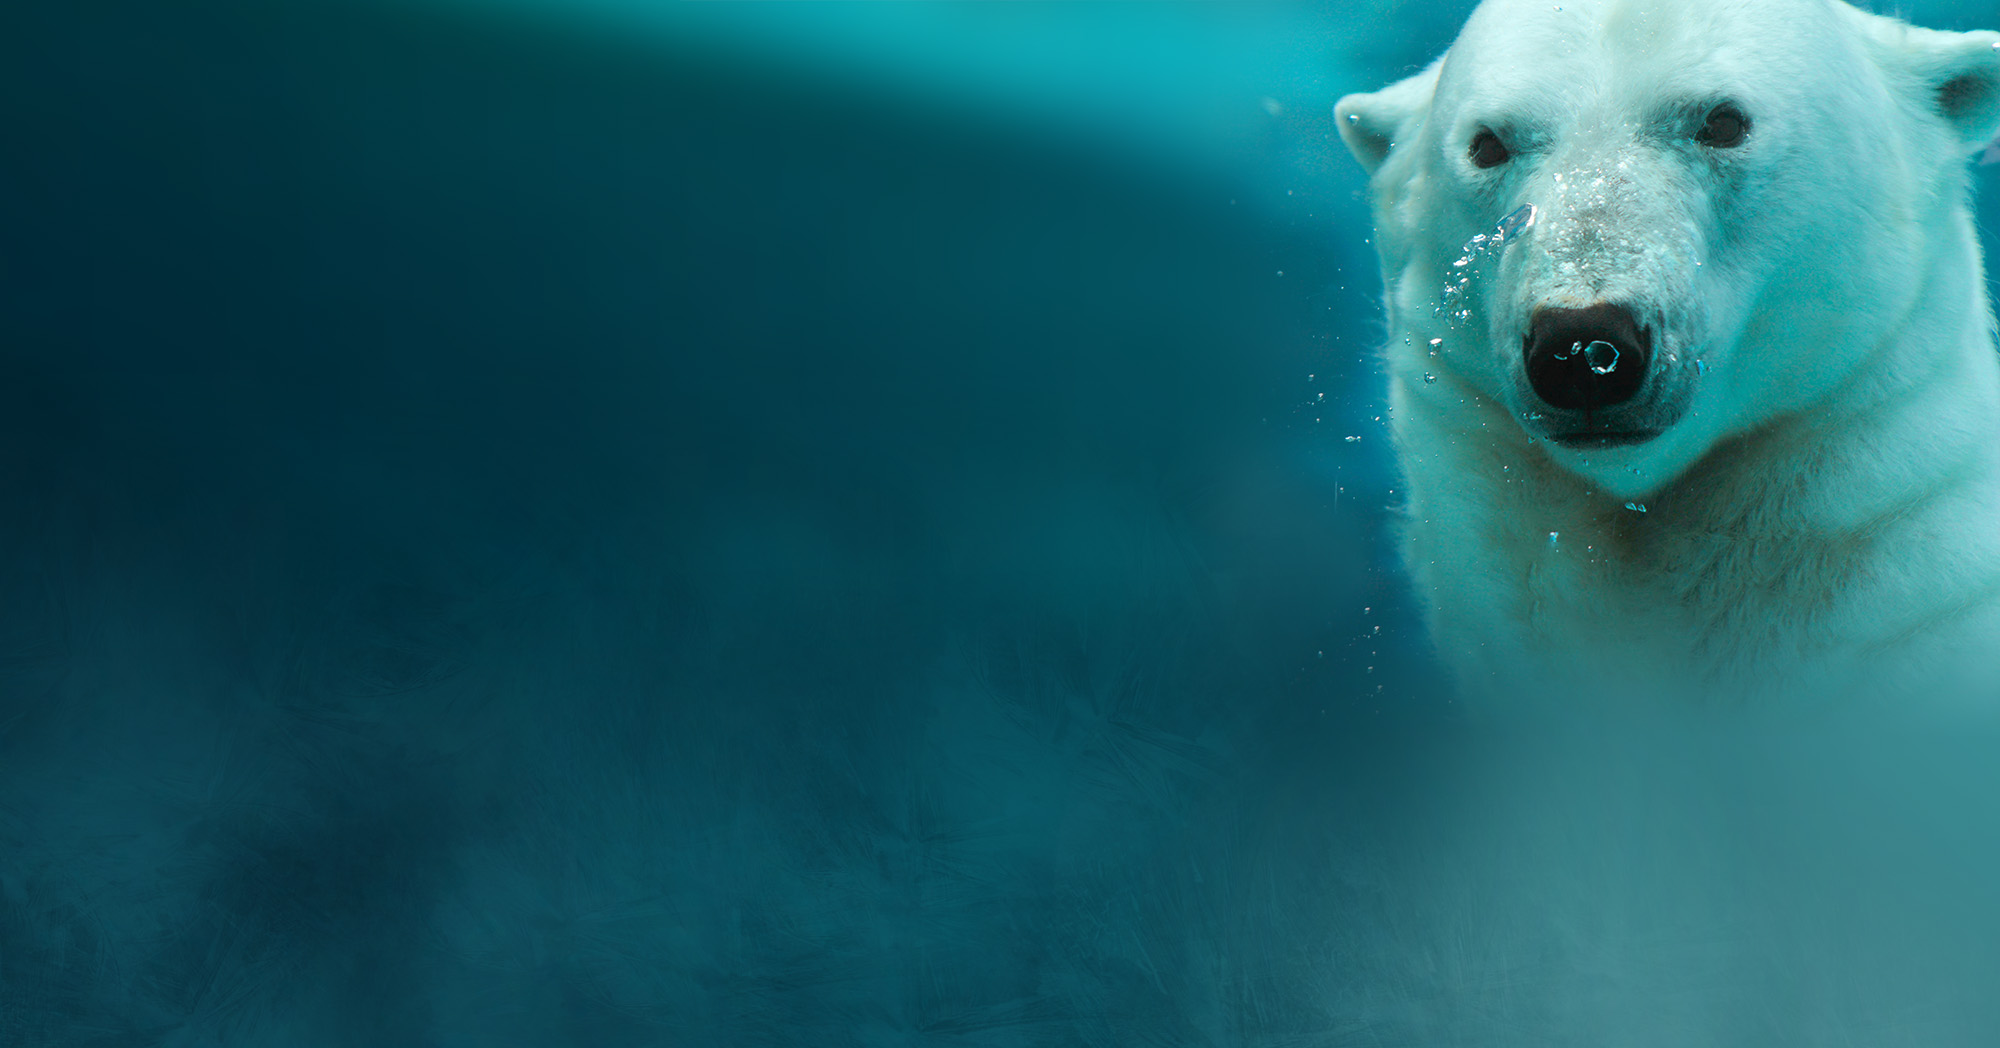 Homepage Polar Bear Background Image